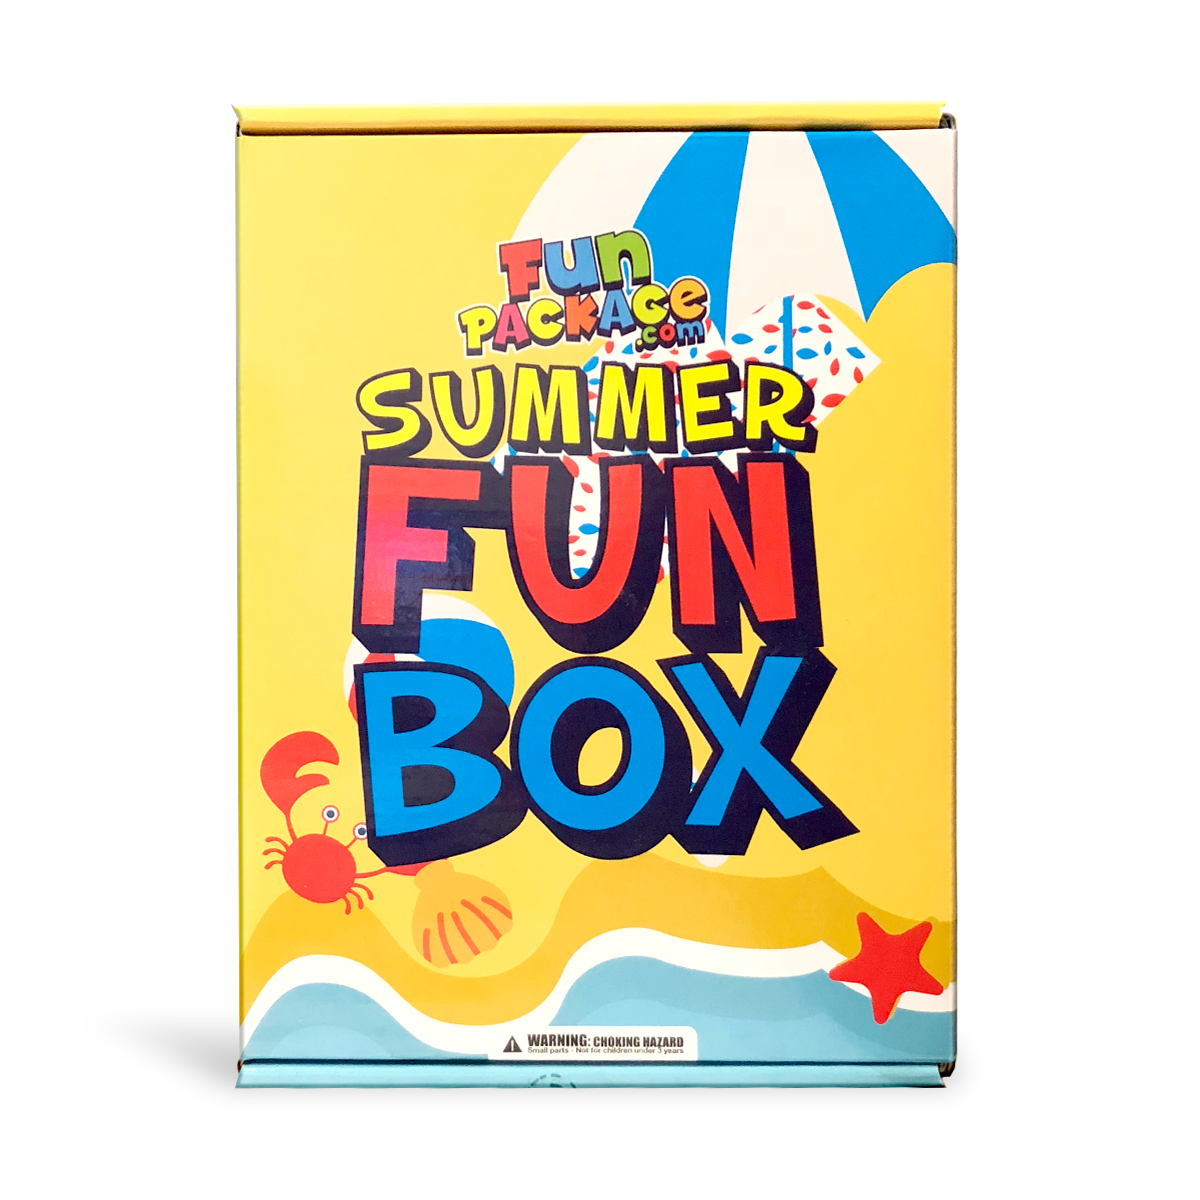 Fun Package - Summer Fun Edition